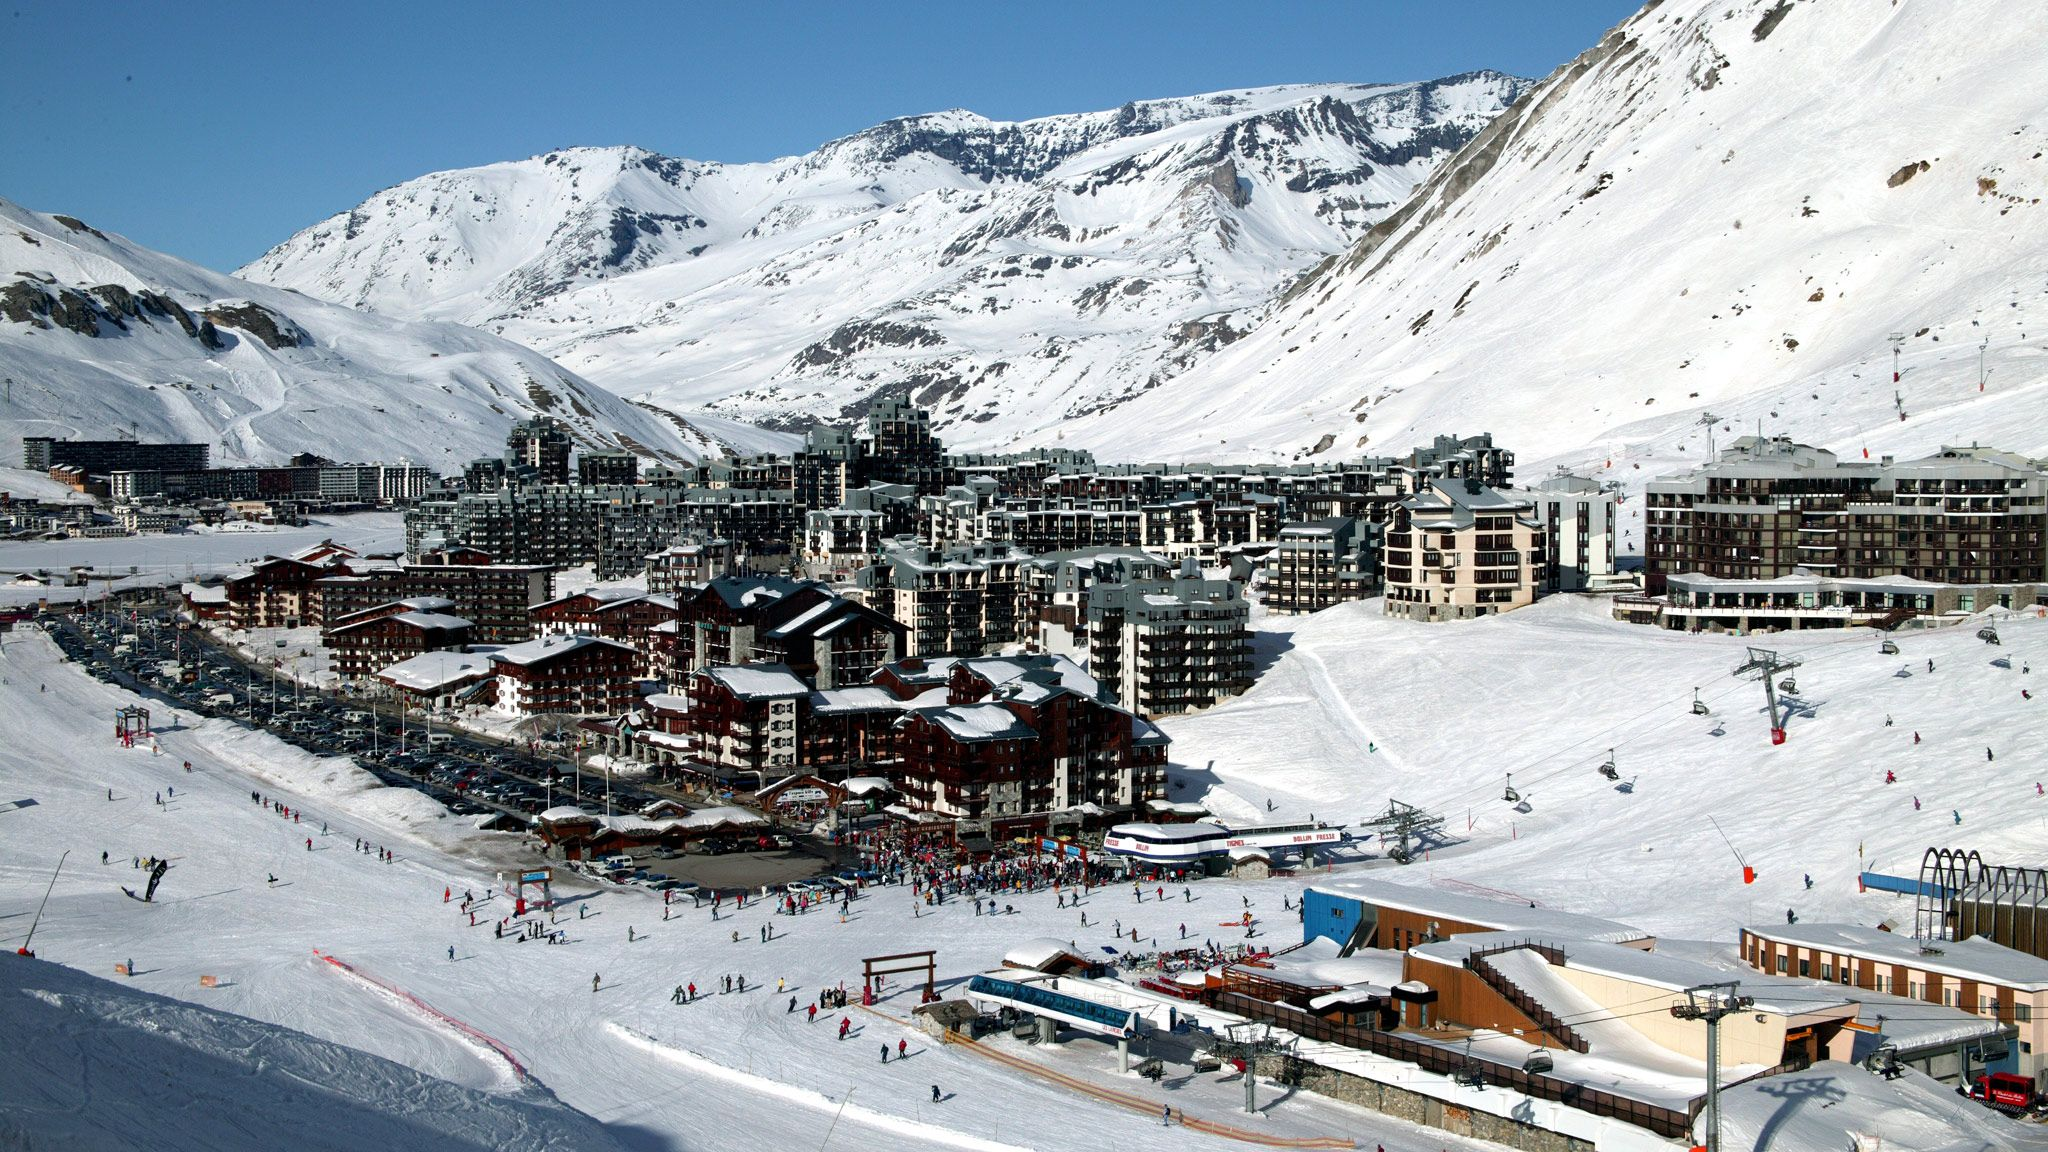 one of the largest ski areas in europe, tignes ski resort has earned